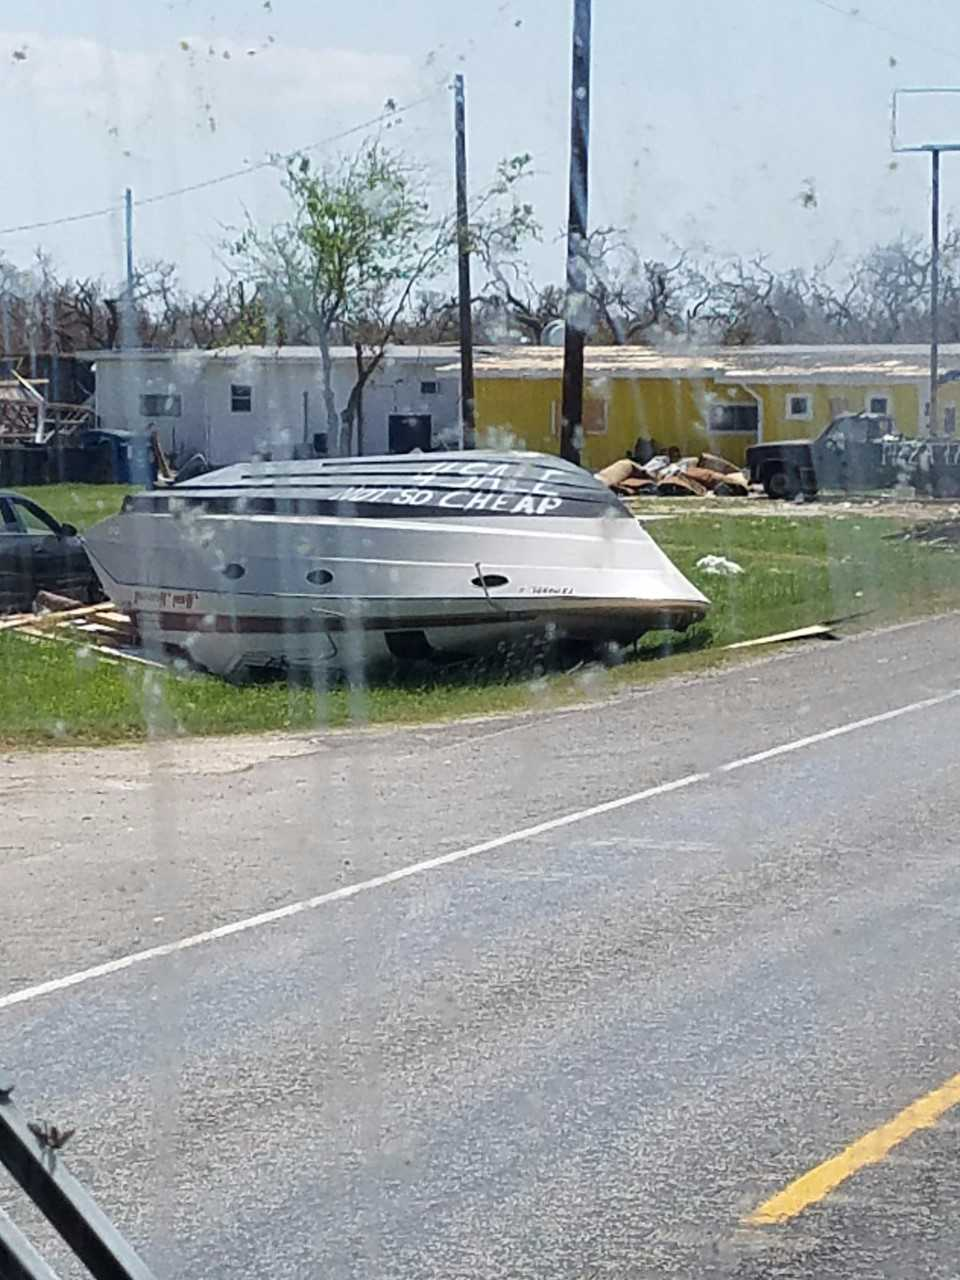 More storm damage in Texas. Photo: Virginia Kipp